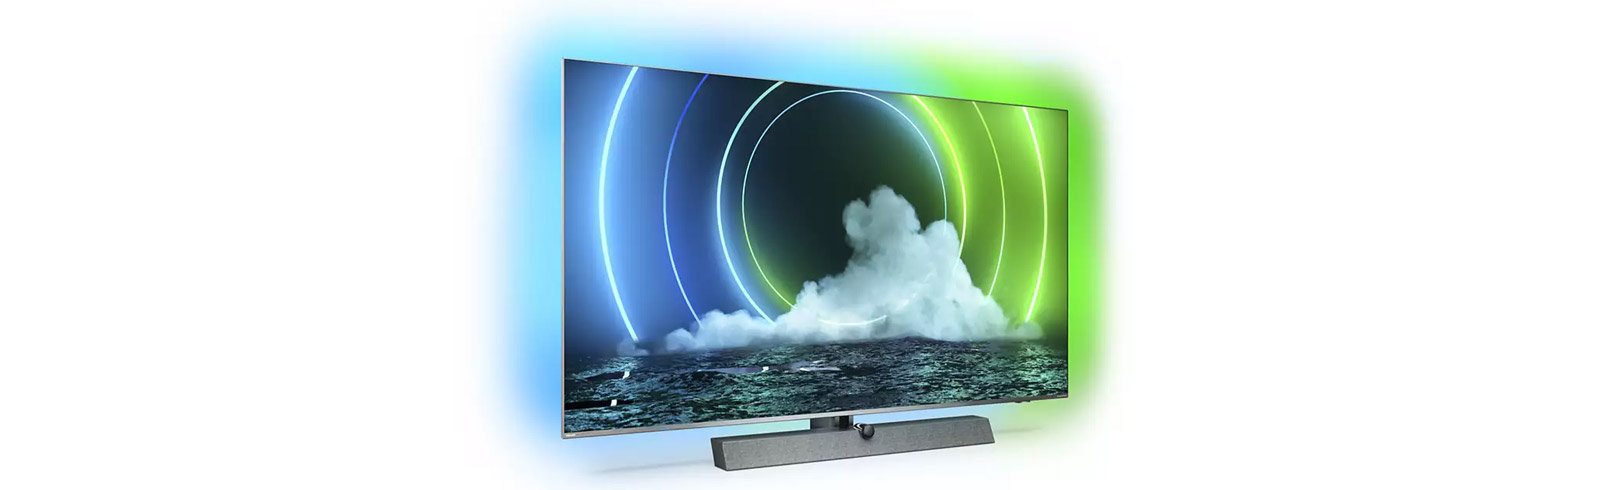 2021 Philips 9636 and Philips 9506 Premium MiniLED TVs - specifications and features